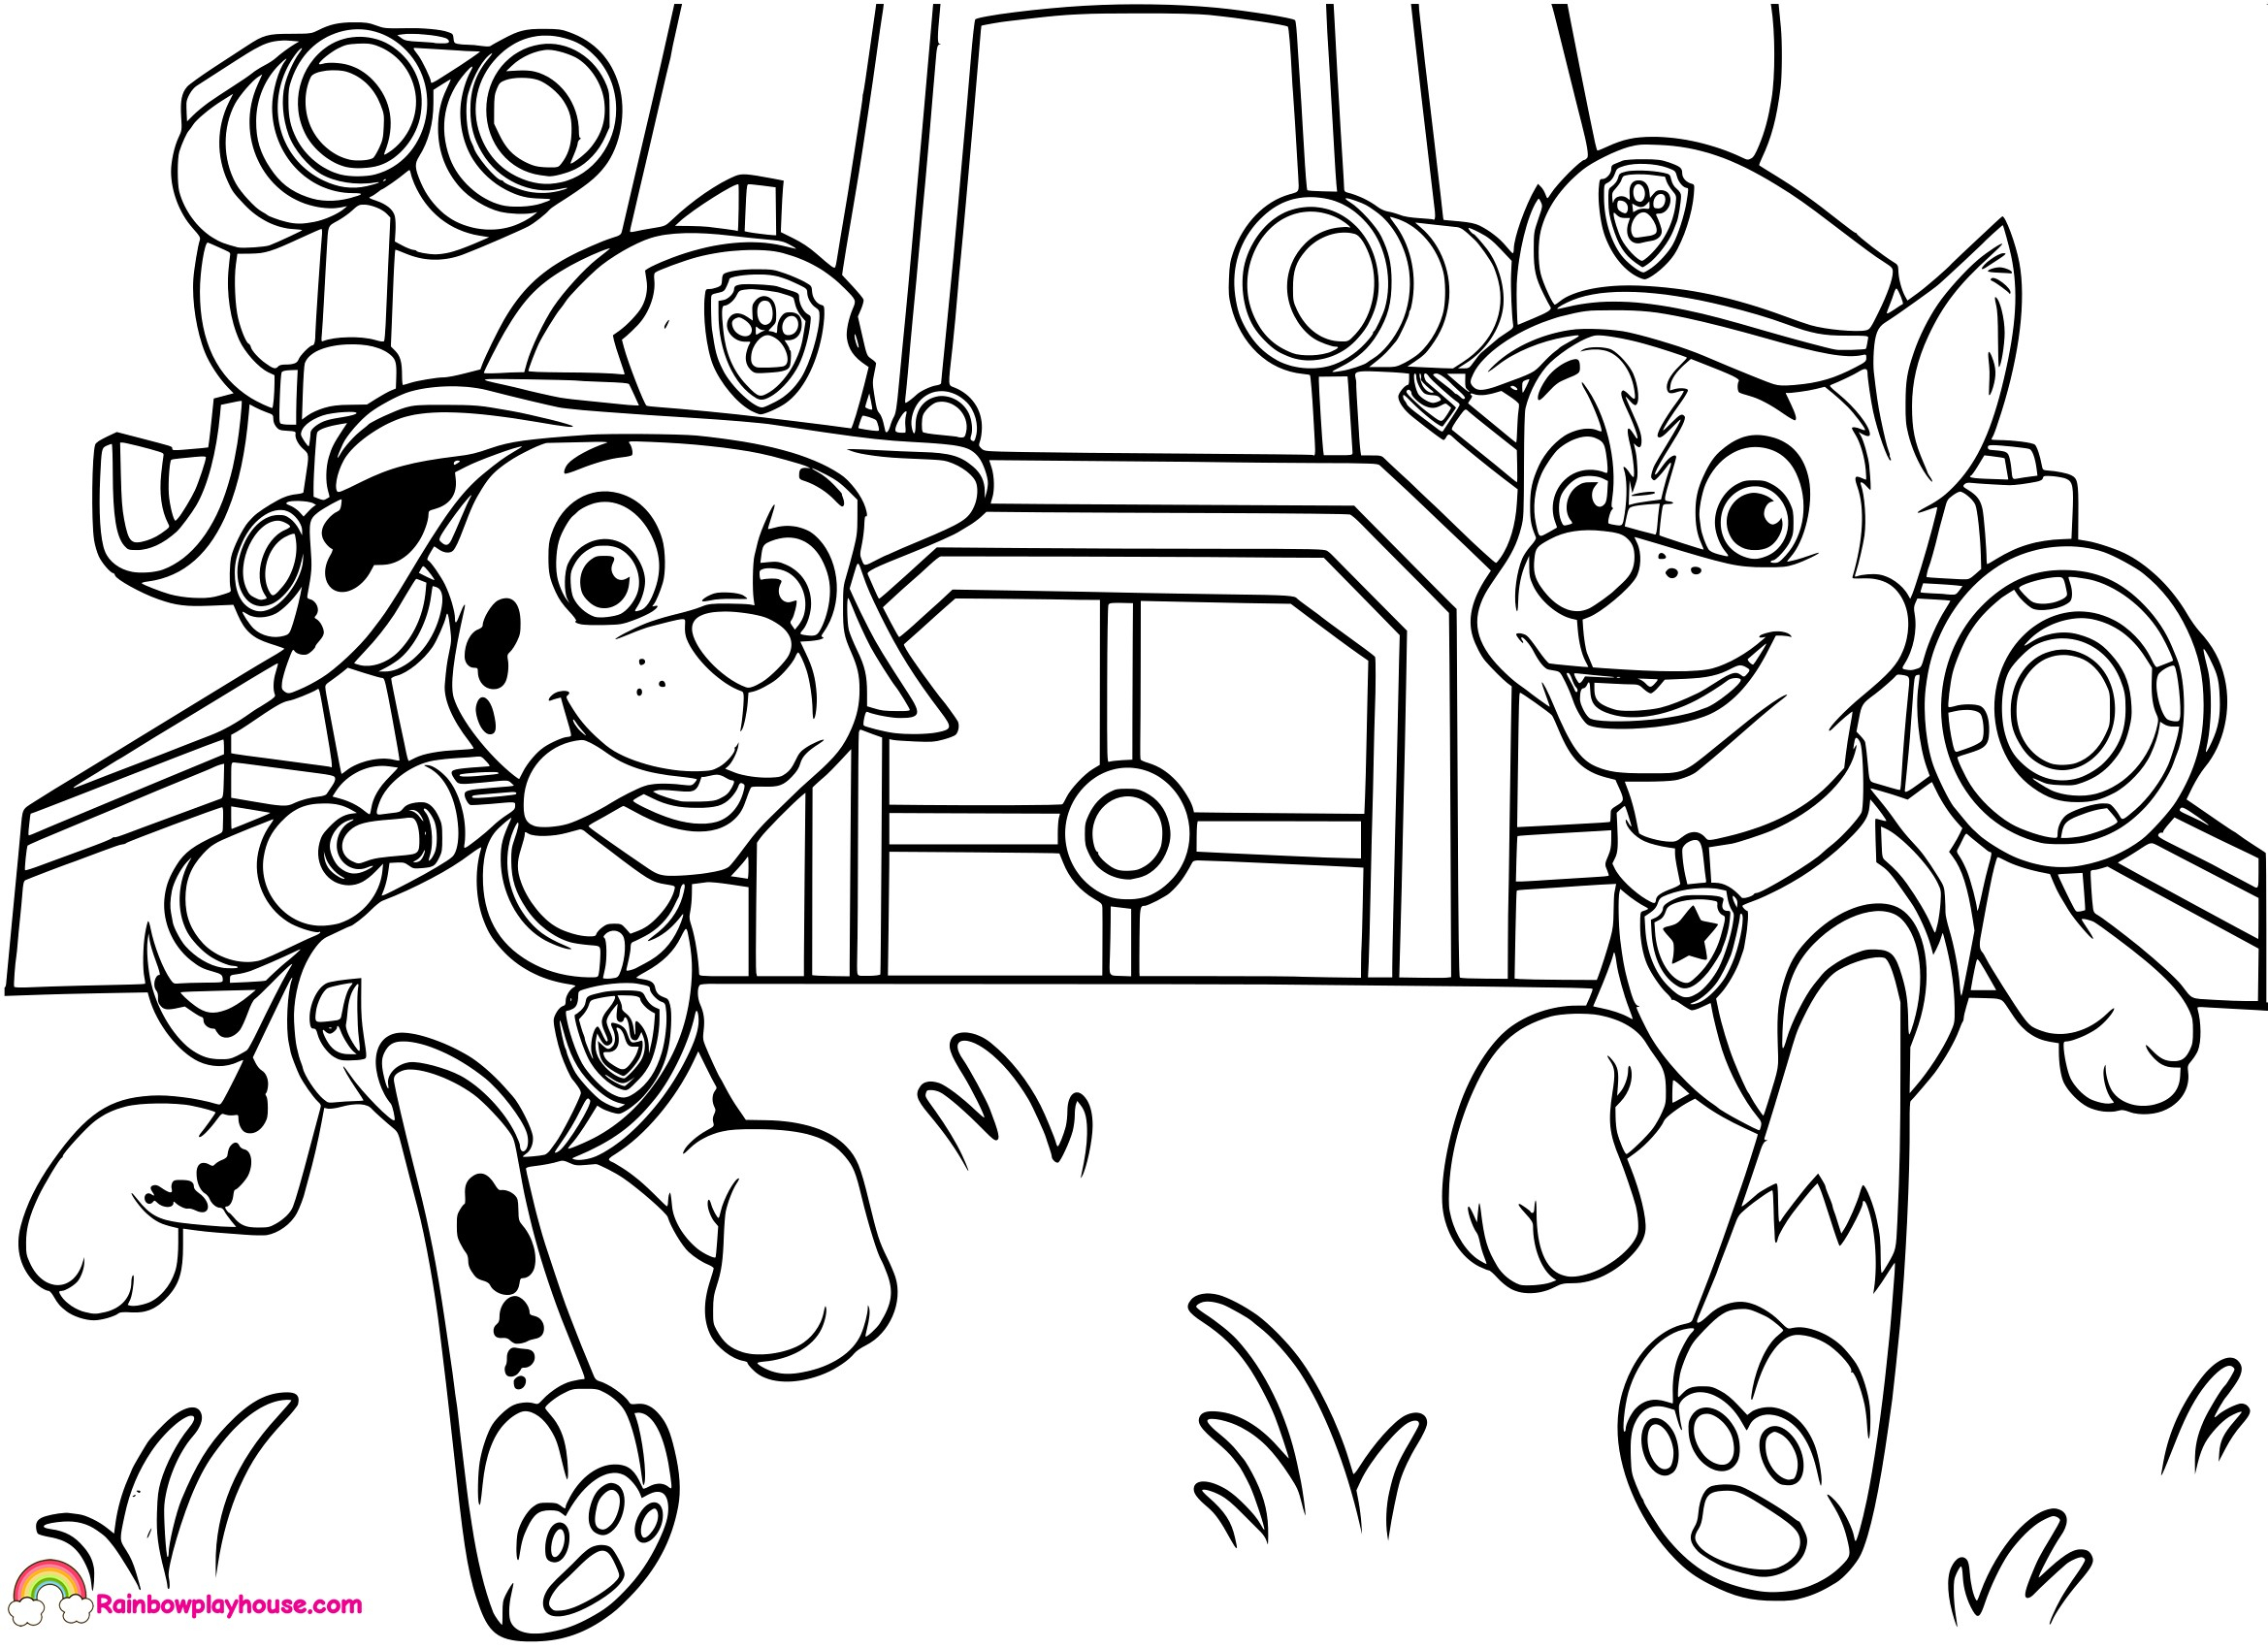 - Marshall Paw Patrol Coloring Page Chase From Paw Patrol Coloring